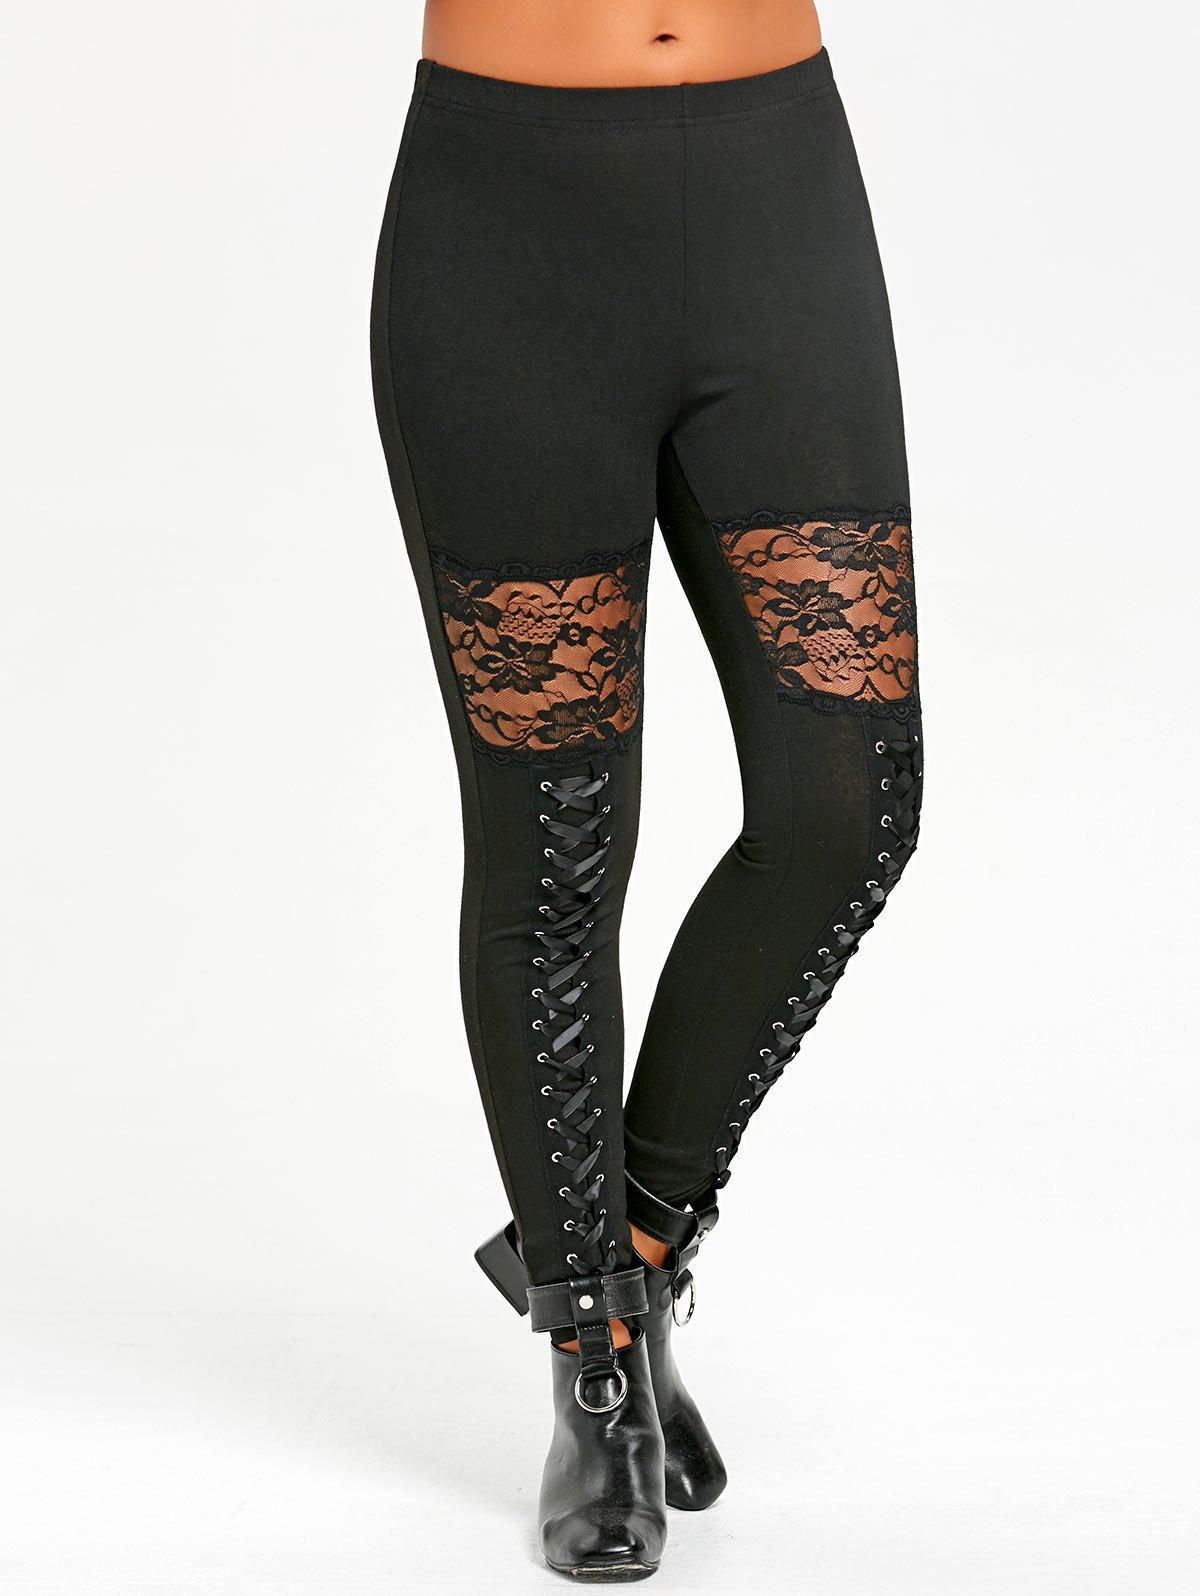 Criss Cross Lace Insert LeggingsWOMEN<br><br>Size: 2XL; Color: BLACK; Style: Fashion; Material: Polyester,Spandex; Waist Type: Mid; Pattern Type: Solid; Weight: 0.2420kg; Package Contents: 1 x Leggings;